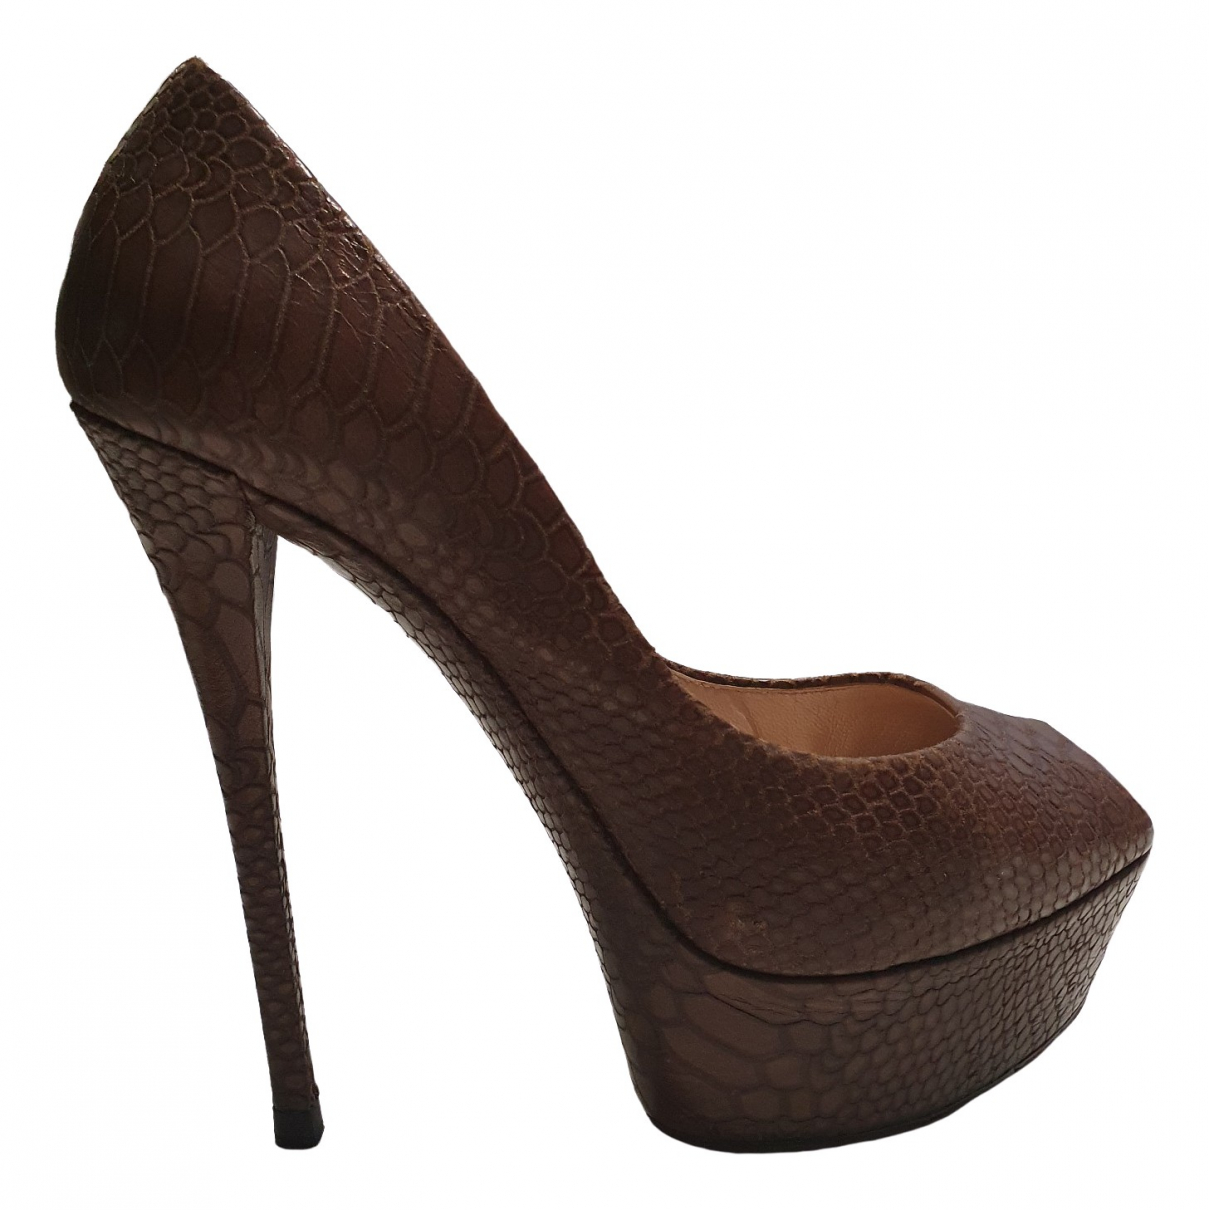 Casadei \N Brown Leather Heels for Women 38 EU